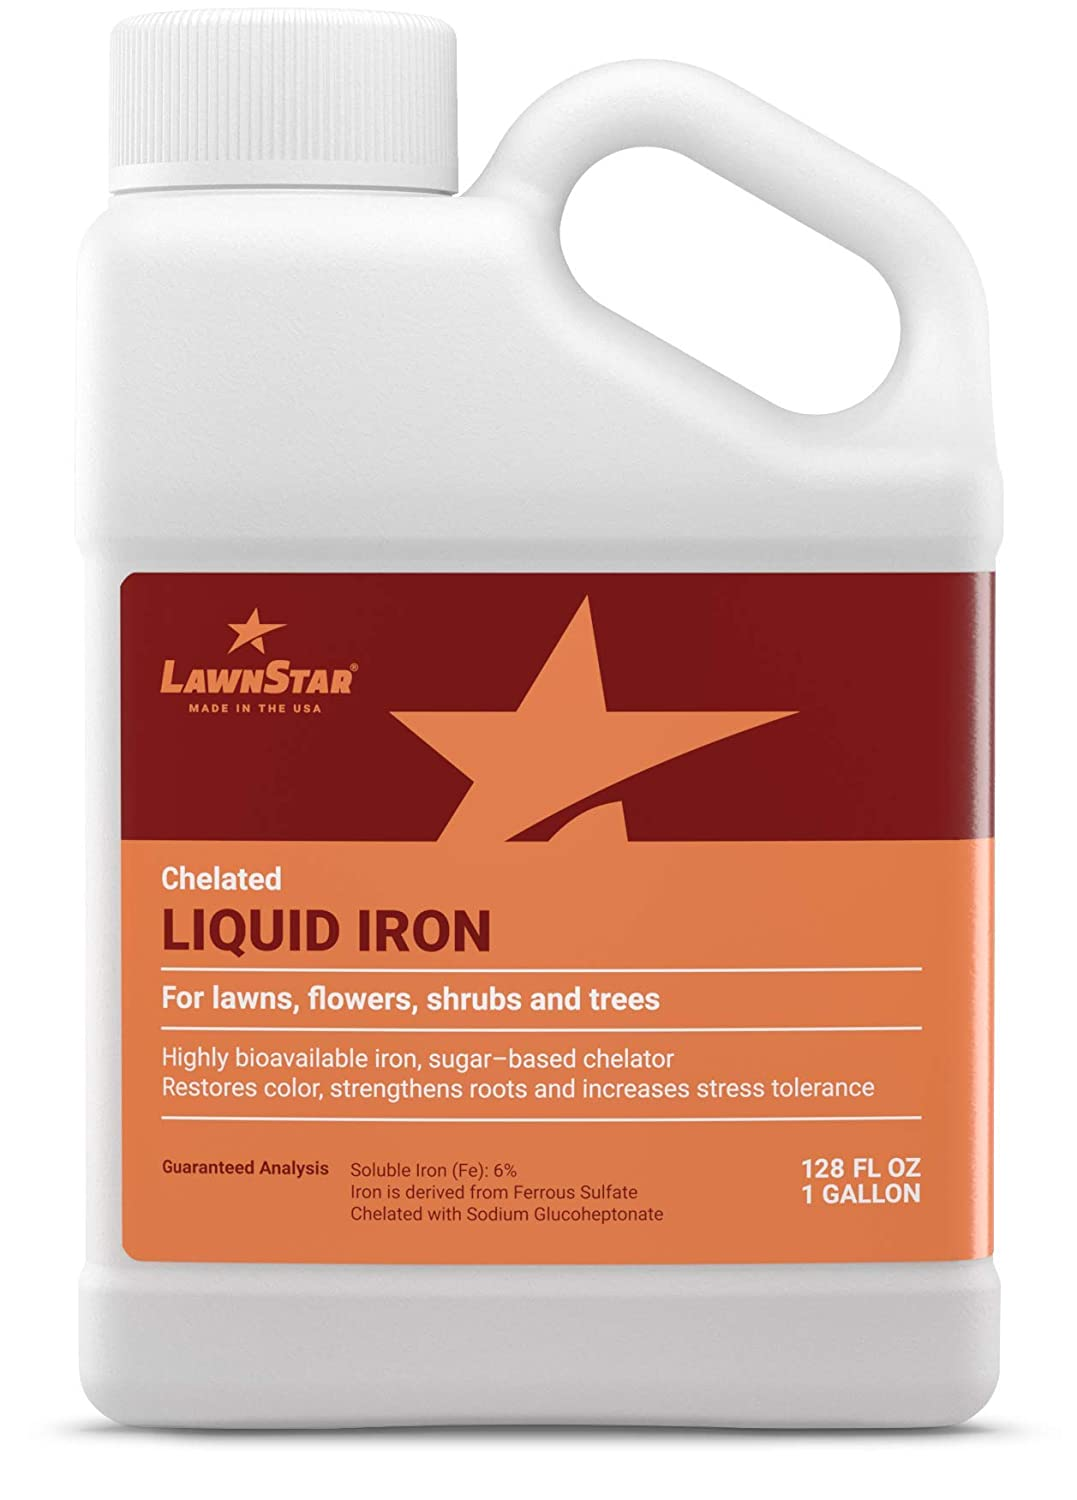 LawnStar Chelated Liquid Iron (1 Gallon) for Plants - Multi-Purpose, Suitable for Lawn, Flowers, Shrubs, Trees - Treats Iron Deficiency, Root Damage & Color Distortion – EDTA-Free, American Made